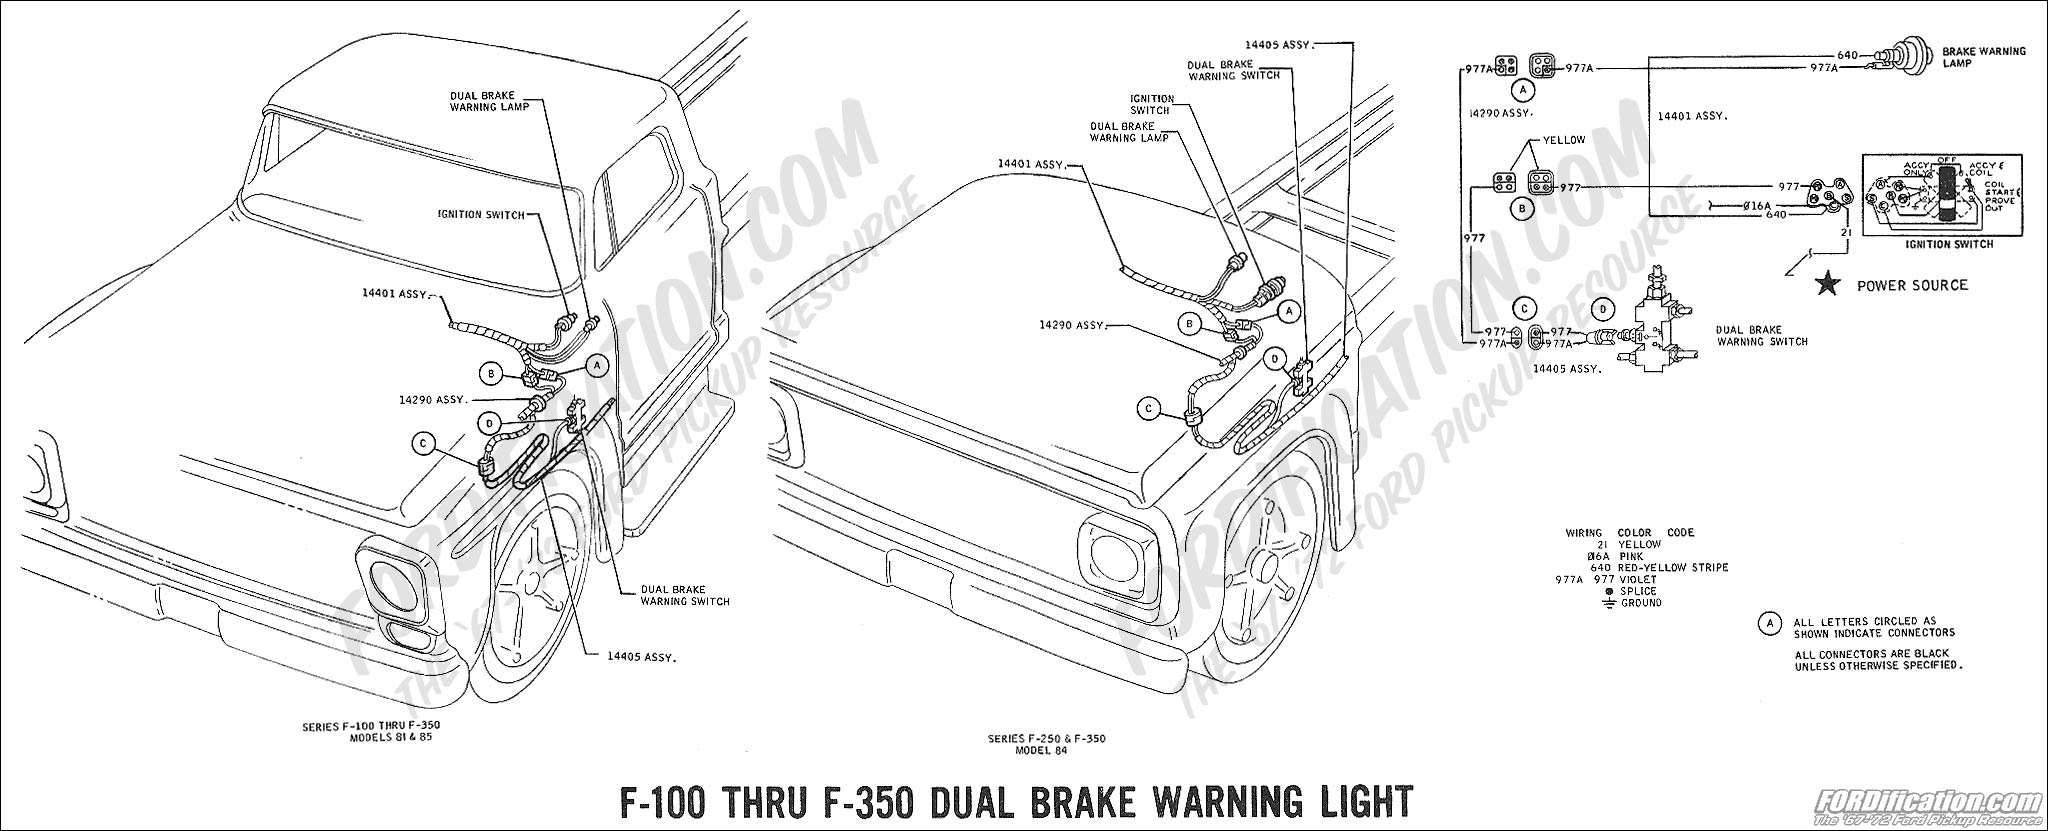 1976 ford f 150 brake light wiring diagram repair guides wiring 1955 Chevrolet Tail Lights medium resolution of 1969 f 100 thru f 350 dual brake warning light ford truck technical